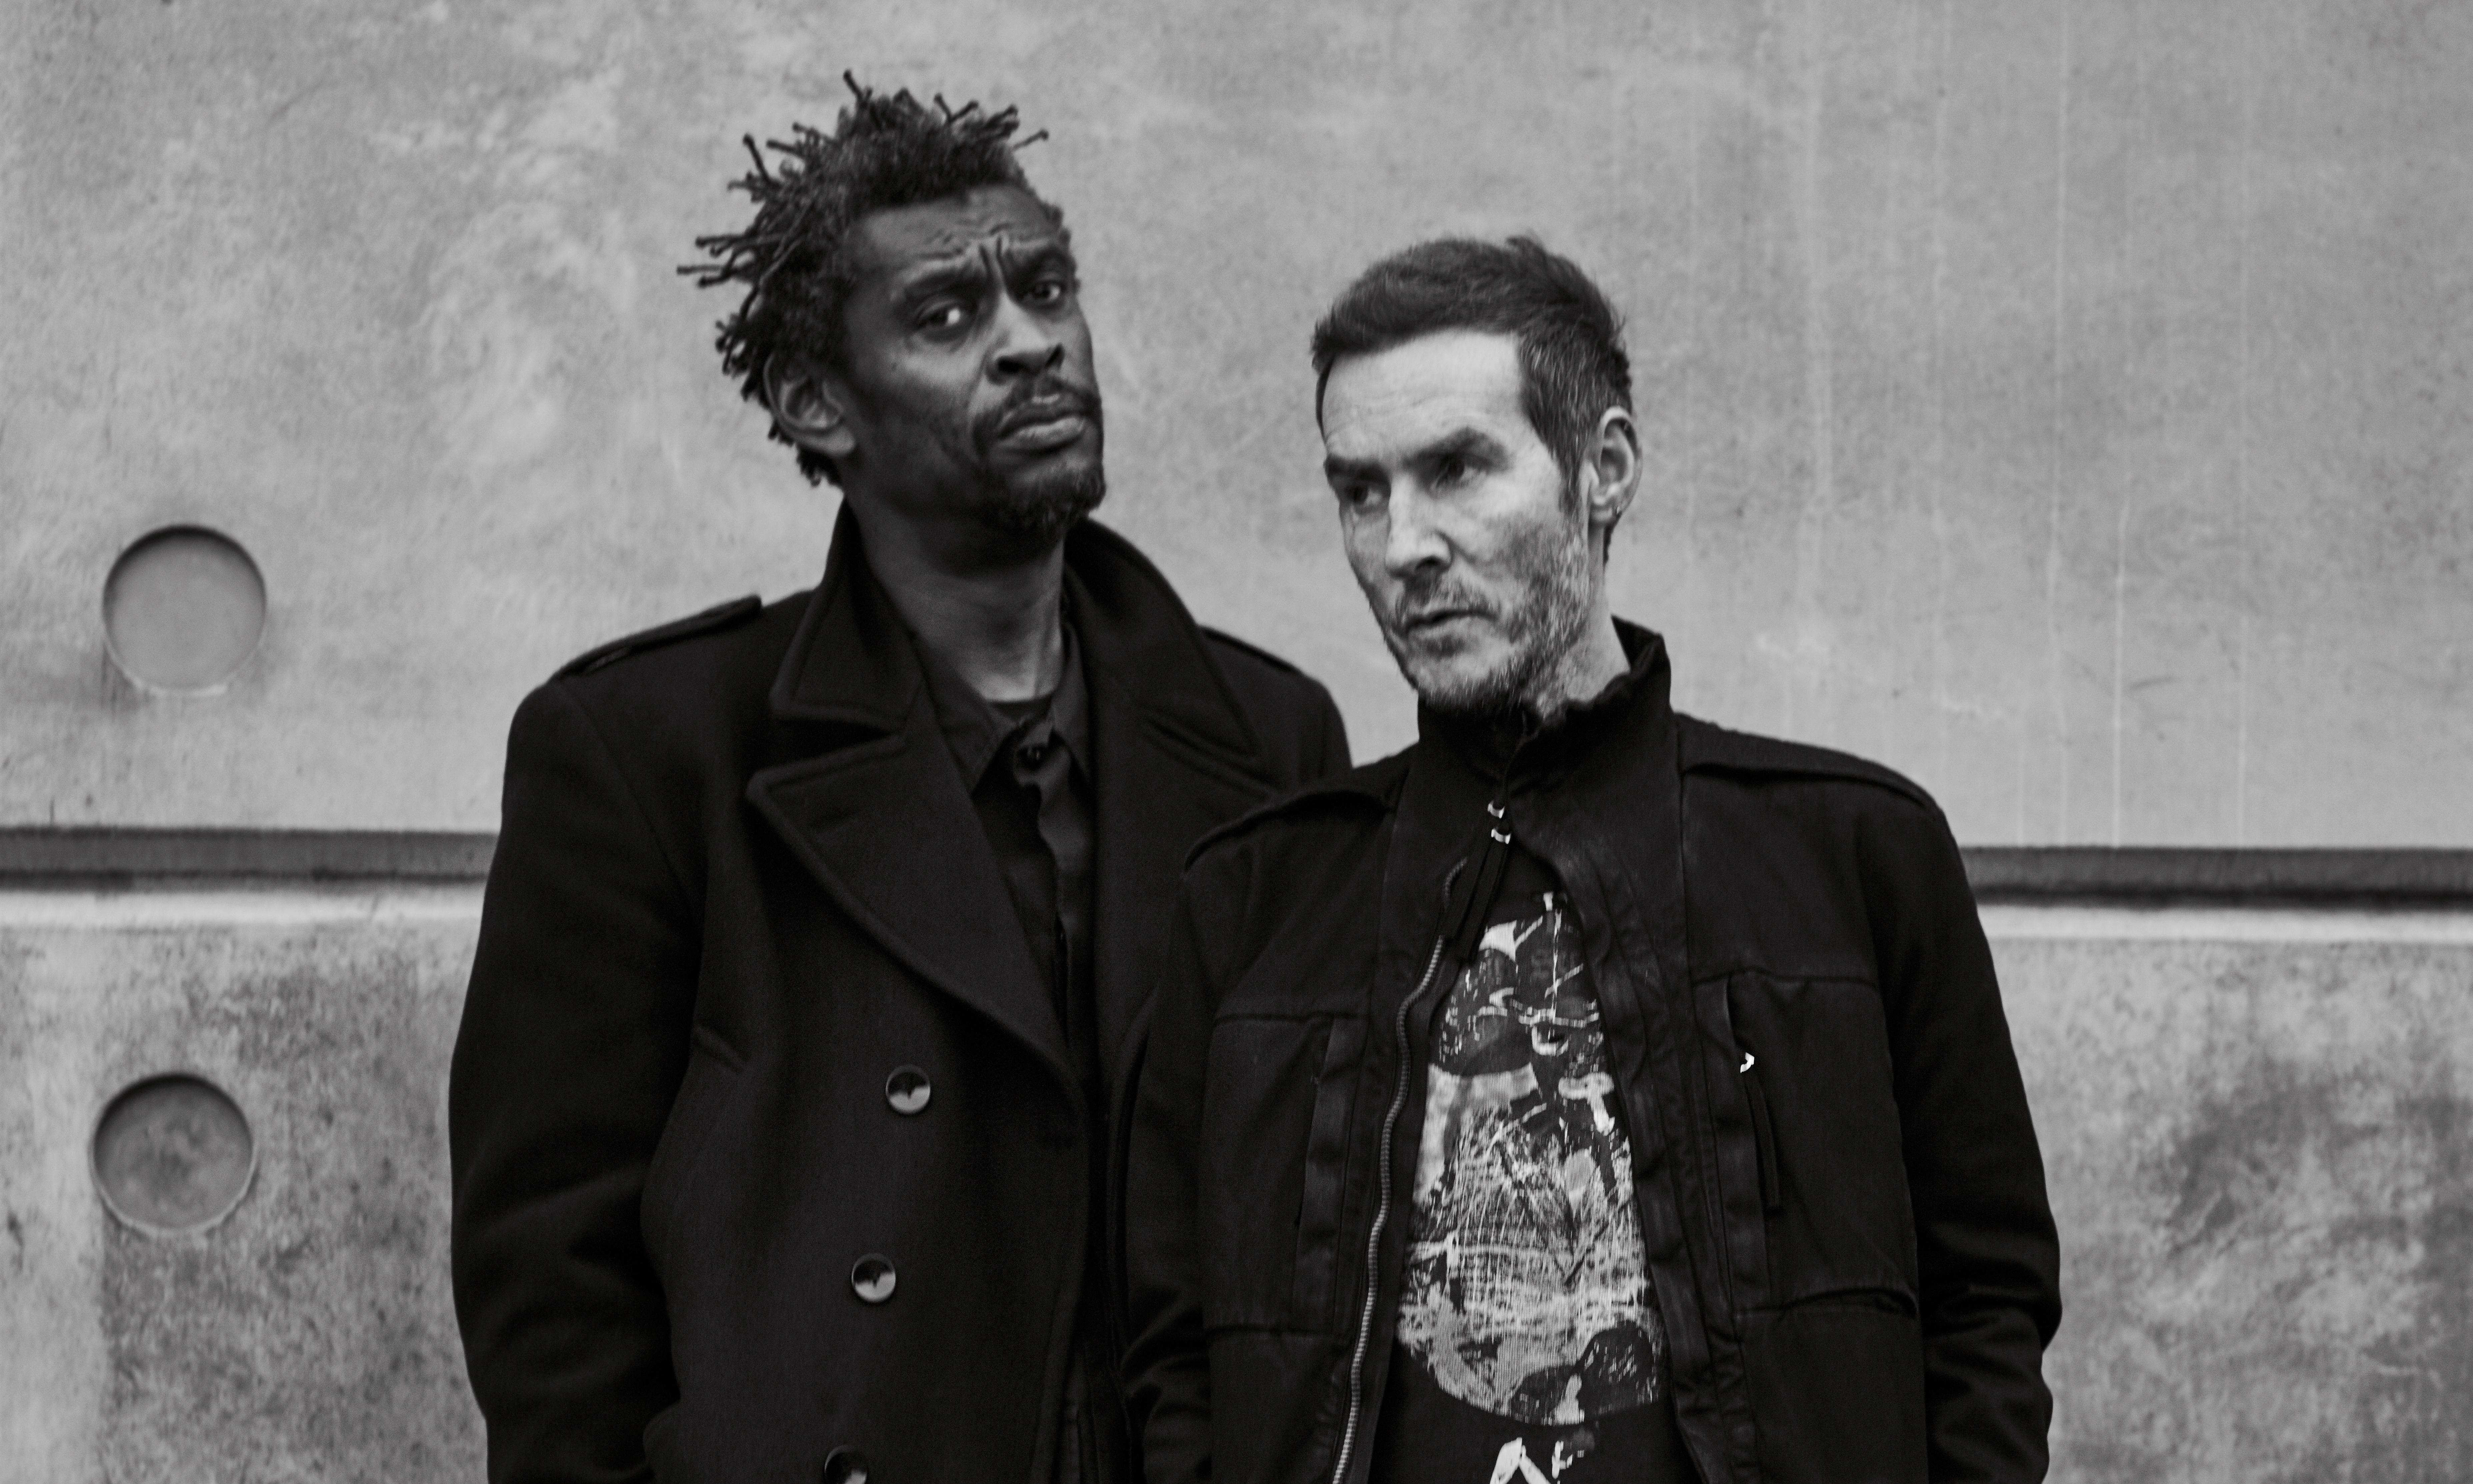 Massive Attack: 'I have total faith in the next generation'